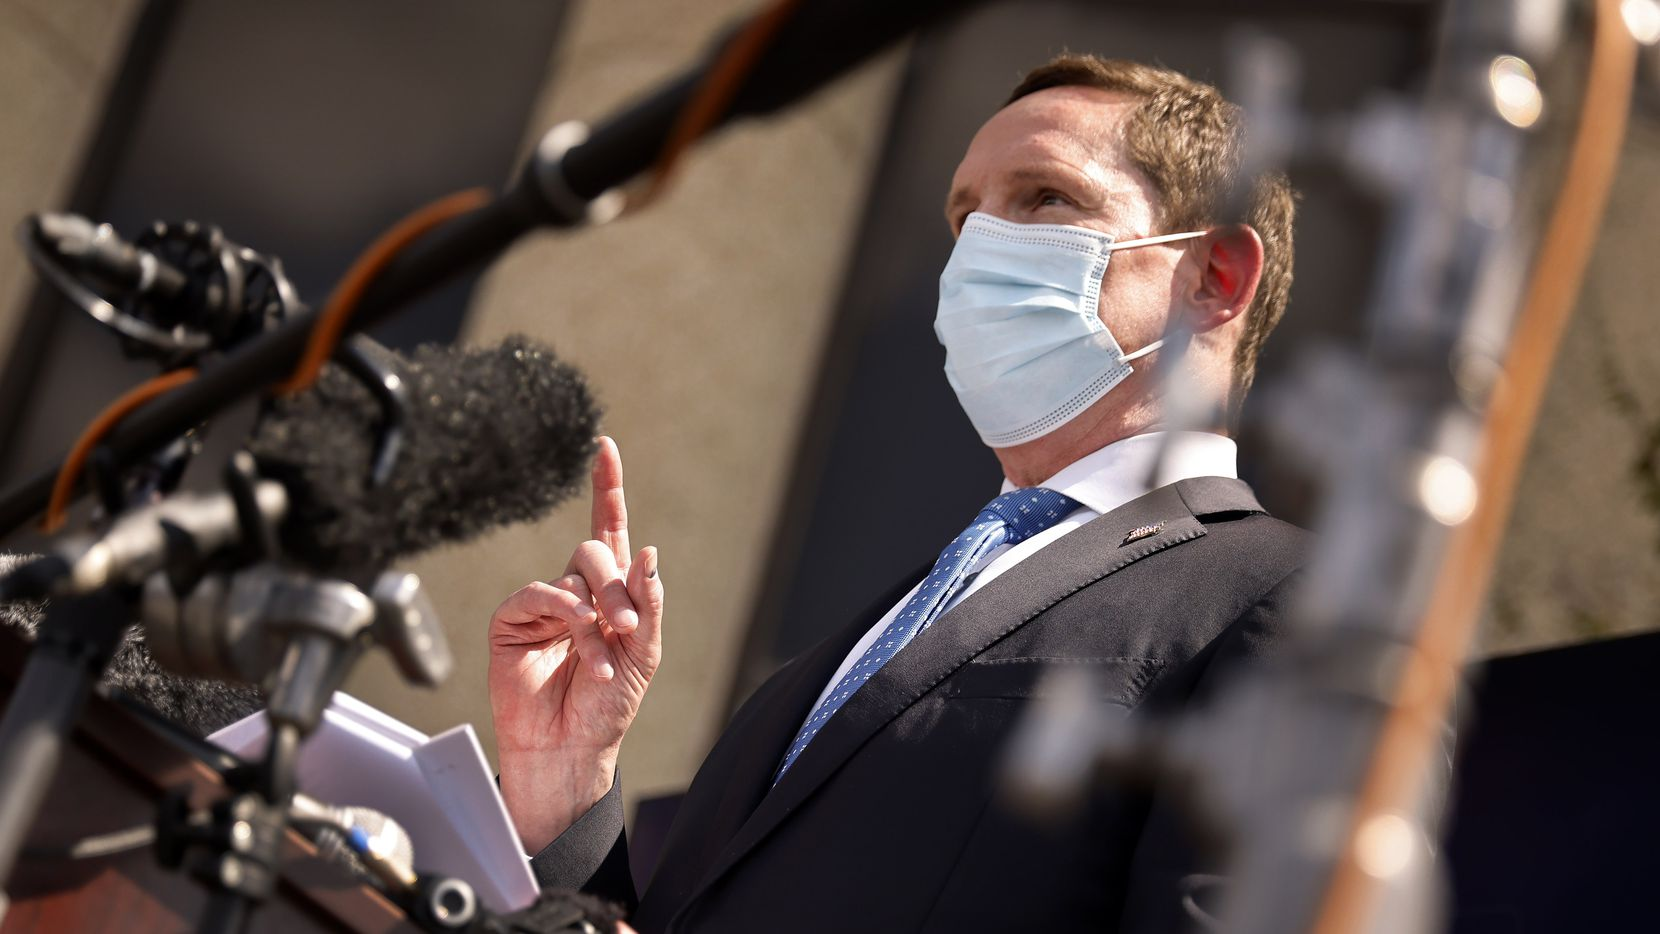 Dallas County Judge Clay Jenkins addressed the media about the current state of the delta coronavirus variant outside the Dallas County Health and Human Services building in Dallas on Aug. 10, 2021. He also spoke about the differences between he and Texas Gov. Greg Abbott when it comes to a mask mandate. (Tom Fox/The Dallas Morning News)